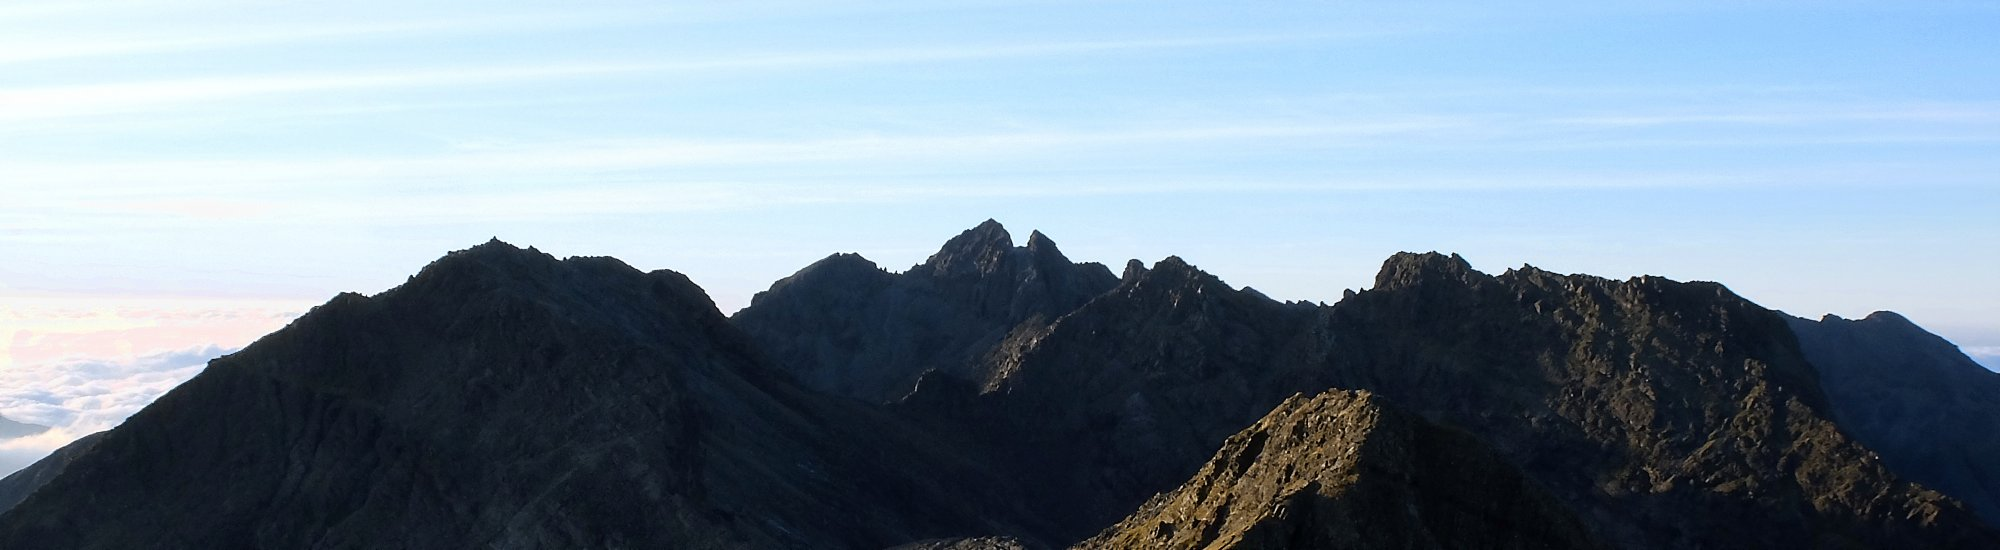 The Cuillin Ridge on a clear day in the shade